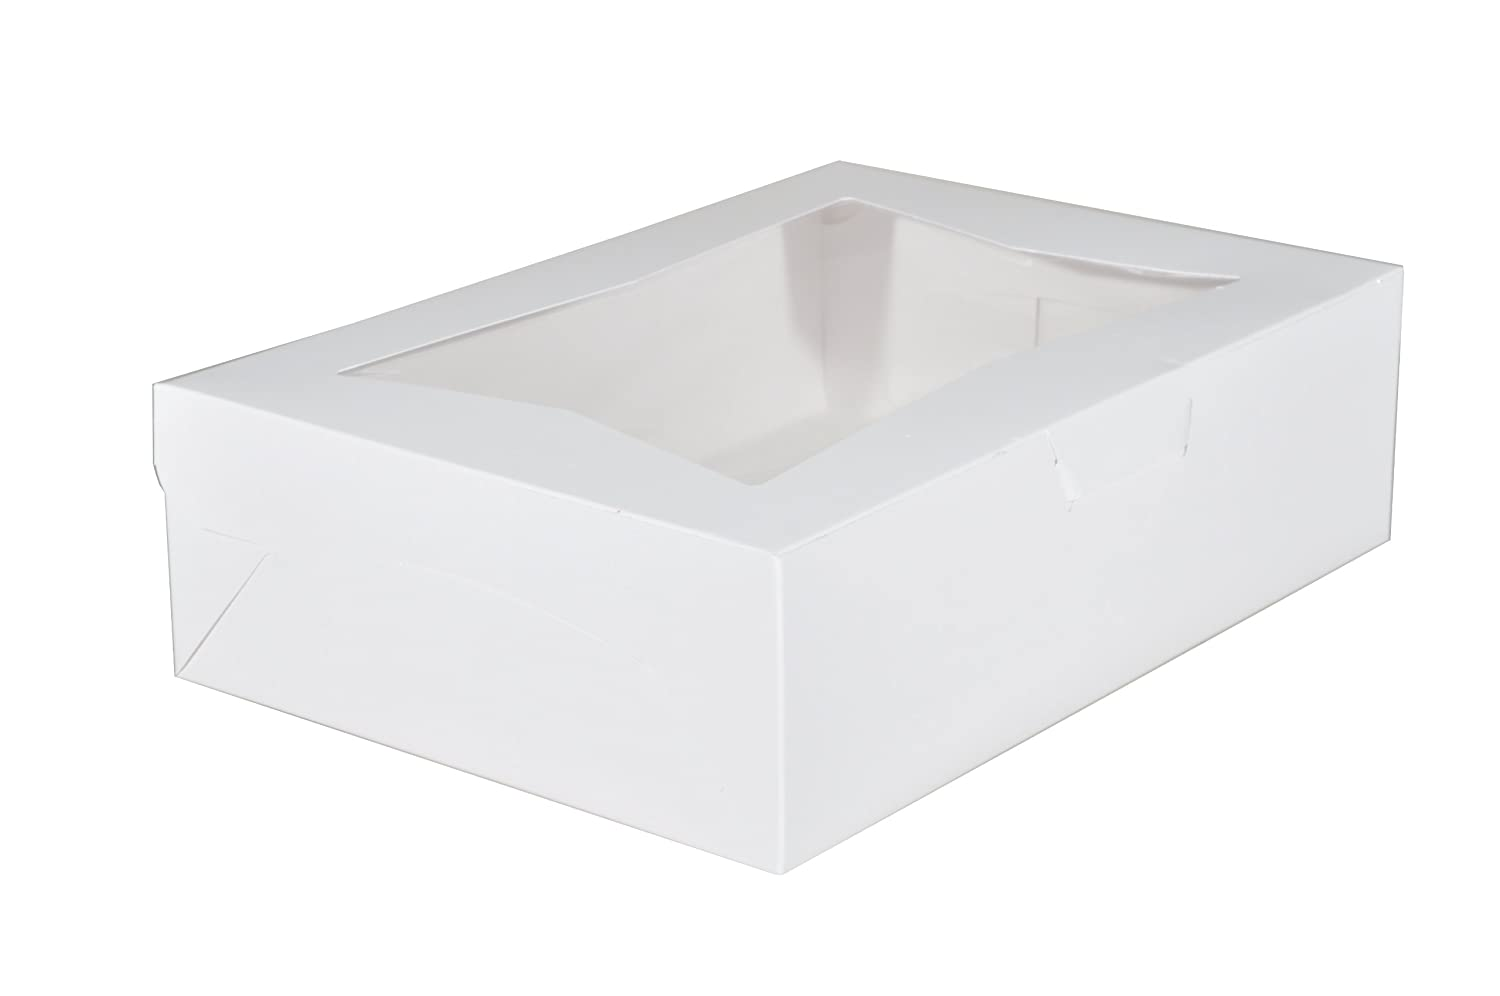 "Southern Champion Tray 23093 Paperboard White Lock Corner Window Bakery Box, 14"" Length x 10"" Width x 4"" Height (Case of 100)"